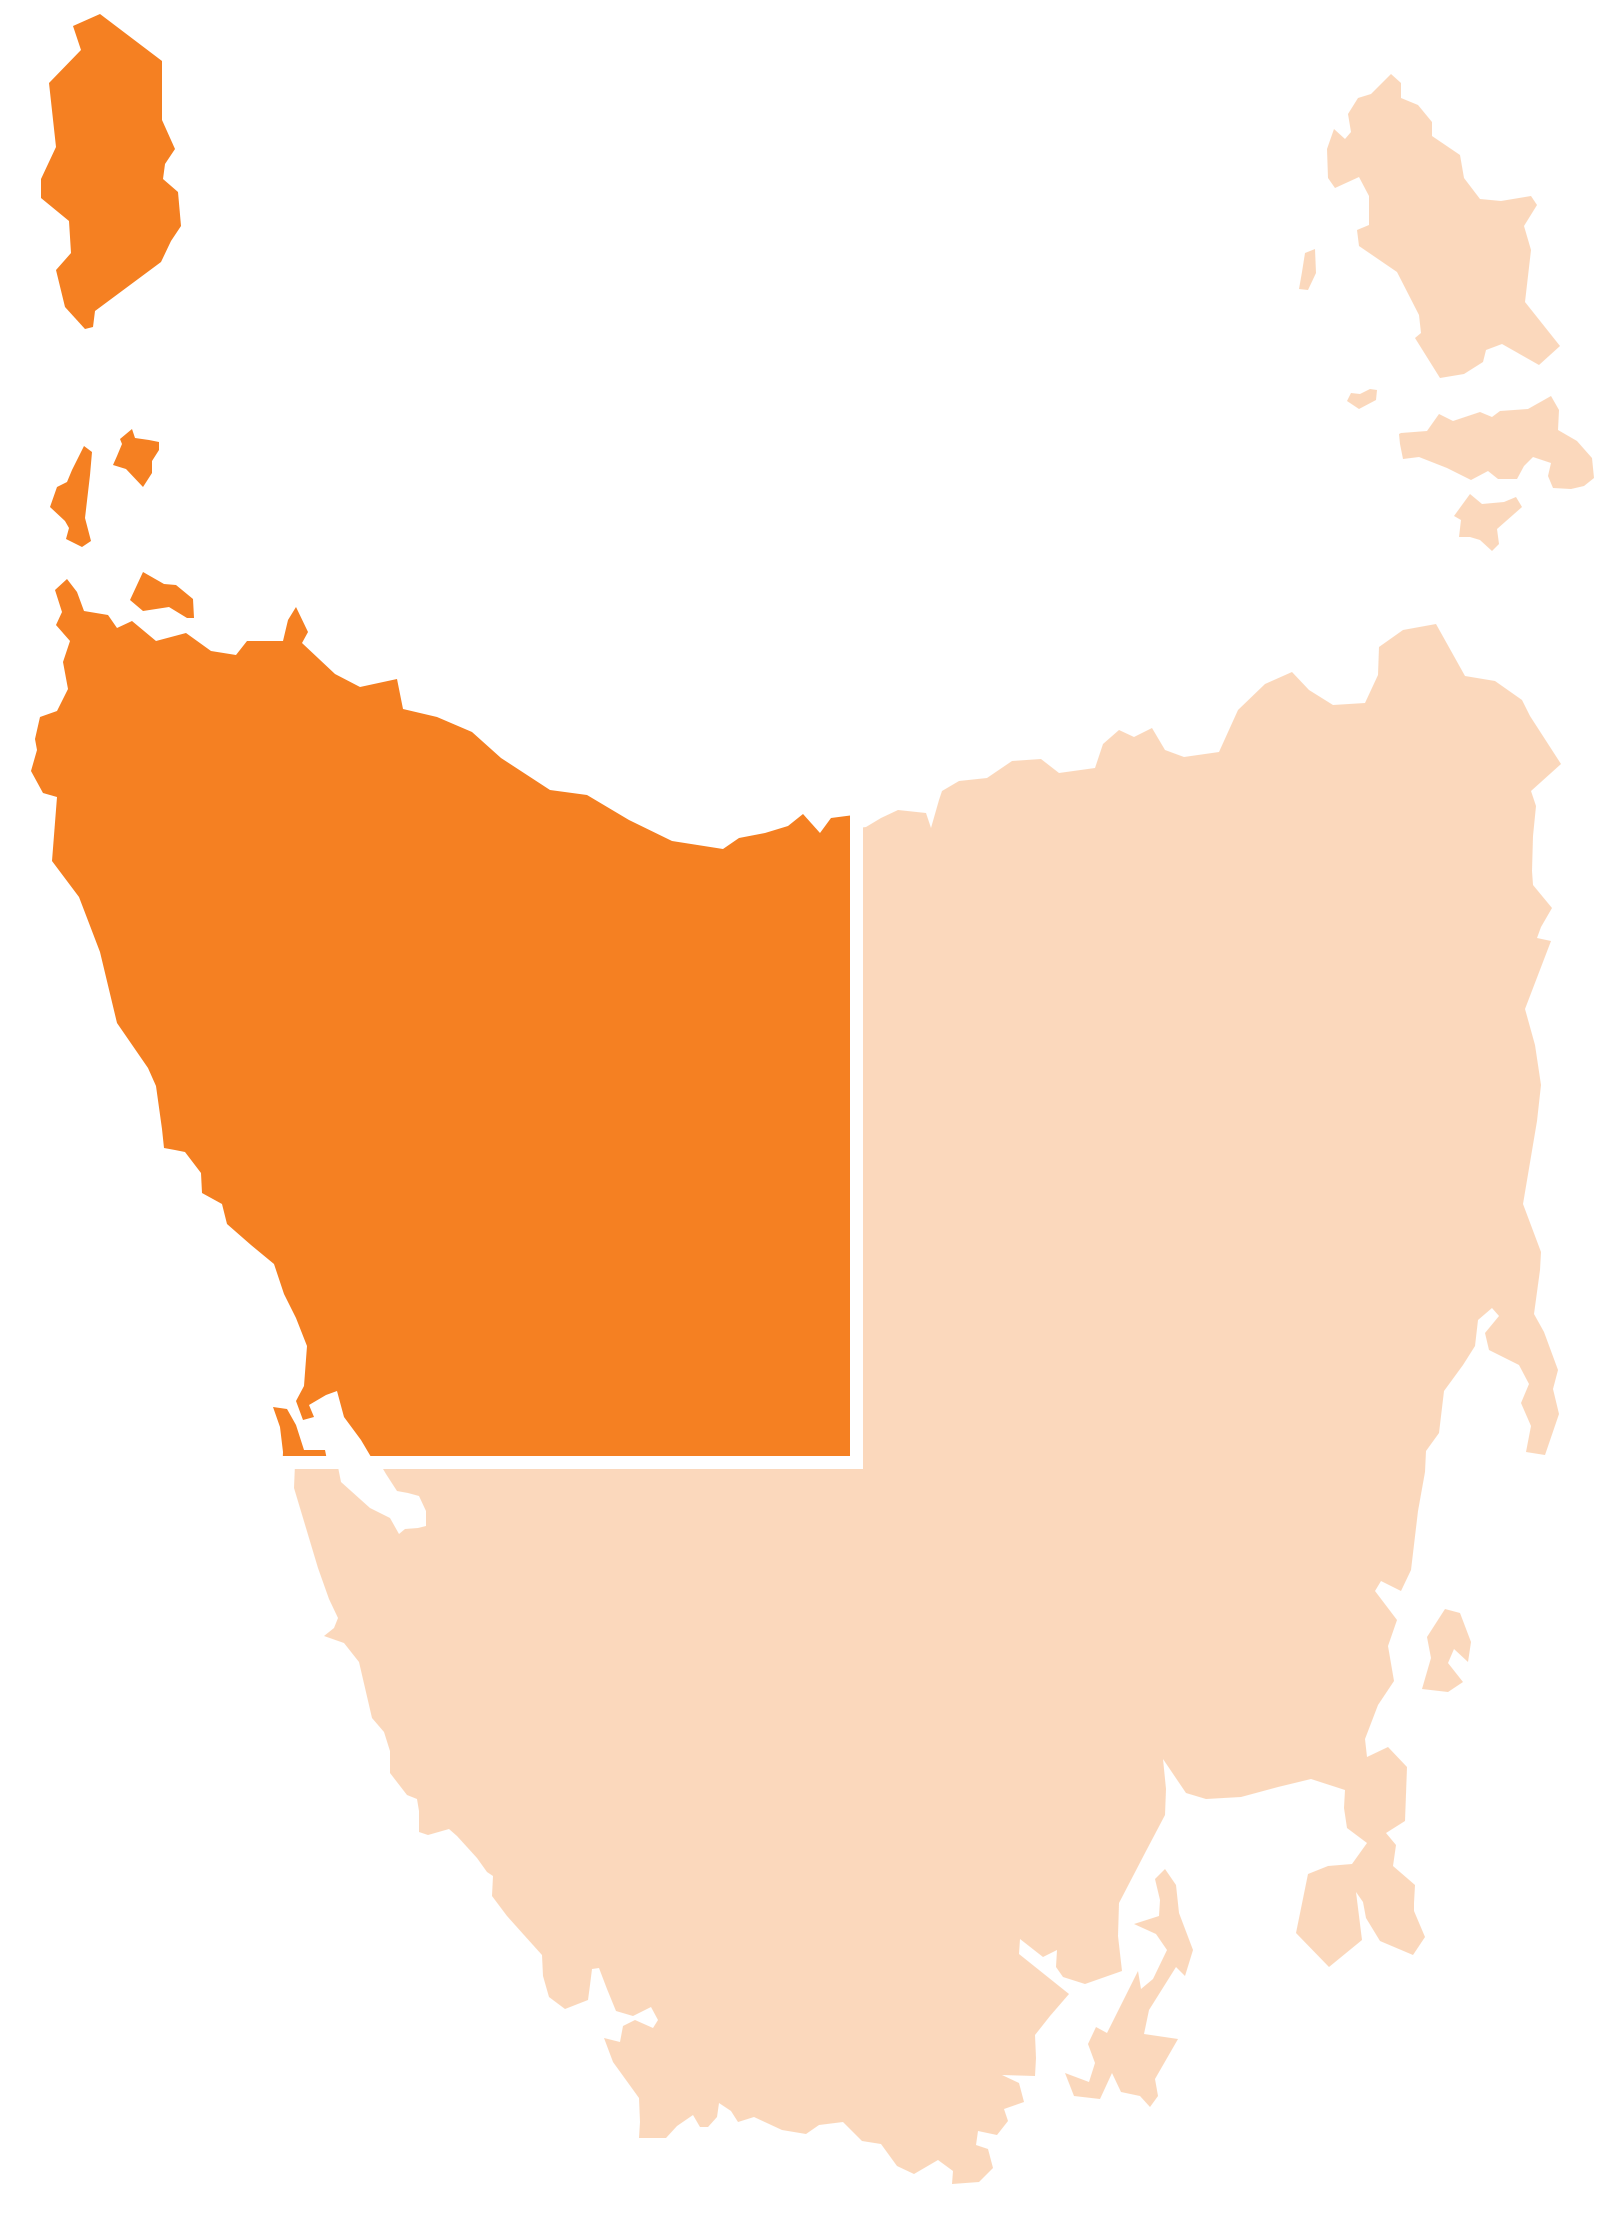 Map of Tasmania and the North West highlighted